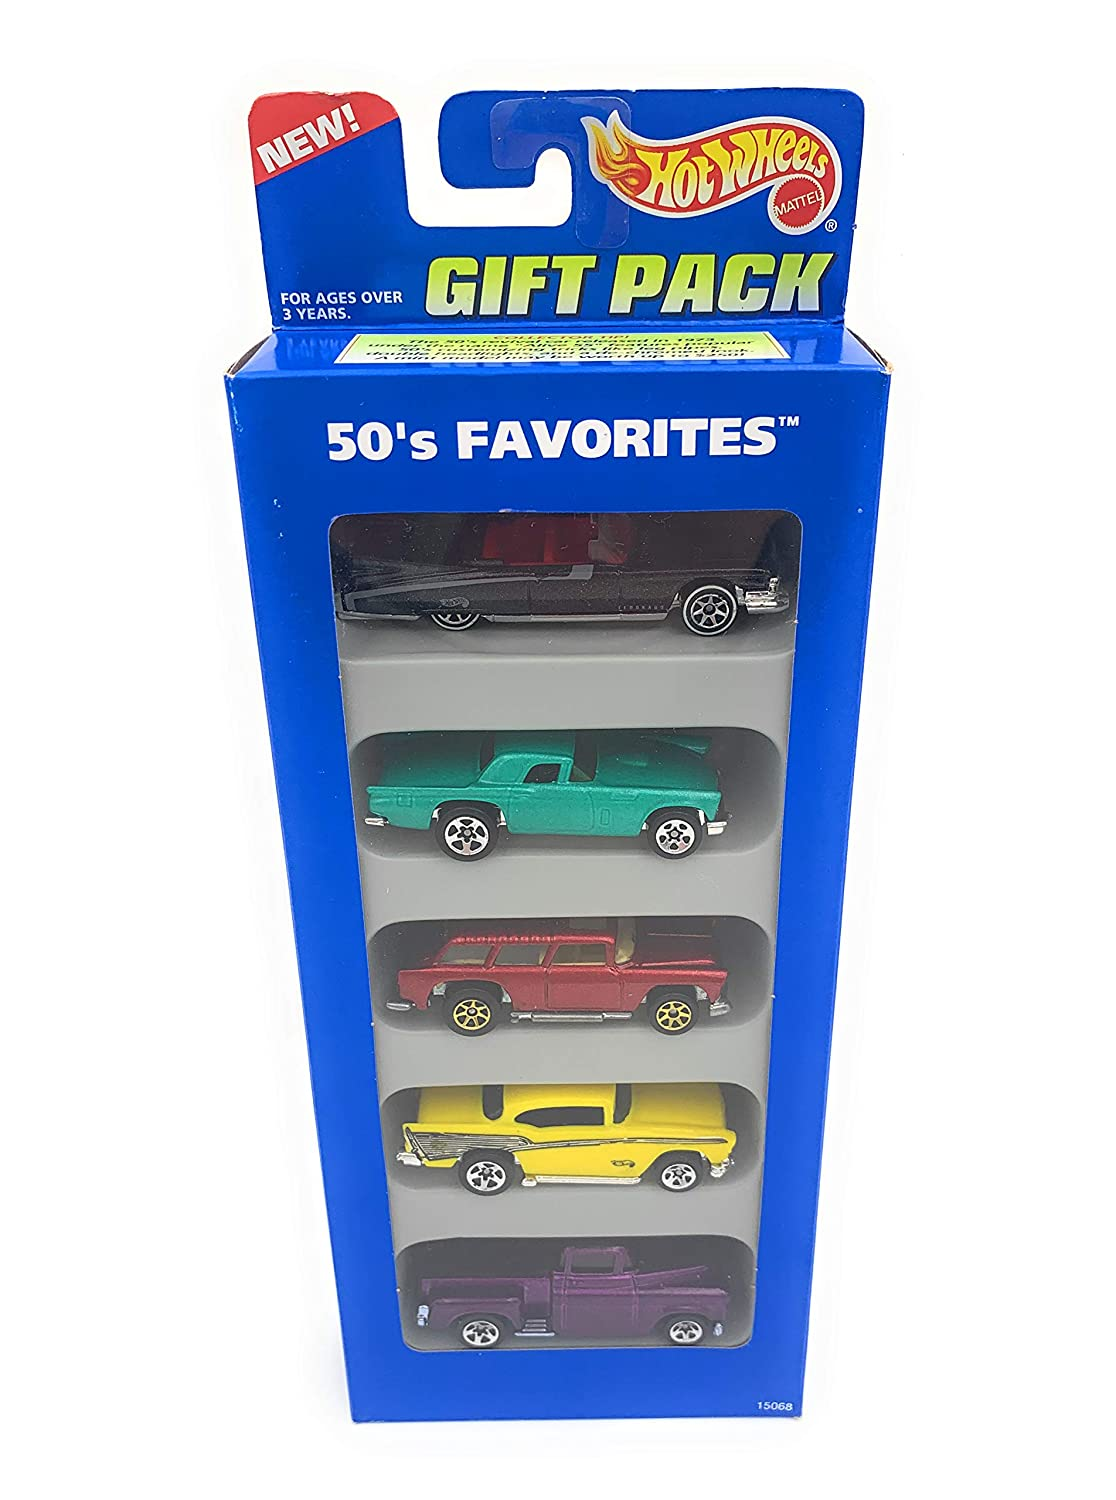 1995 Hot Wheels '59 Caddy, '57 T-bird, Chevy Nomad, '57 Chevy, '56 Flashsider